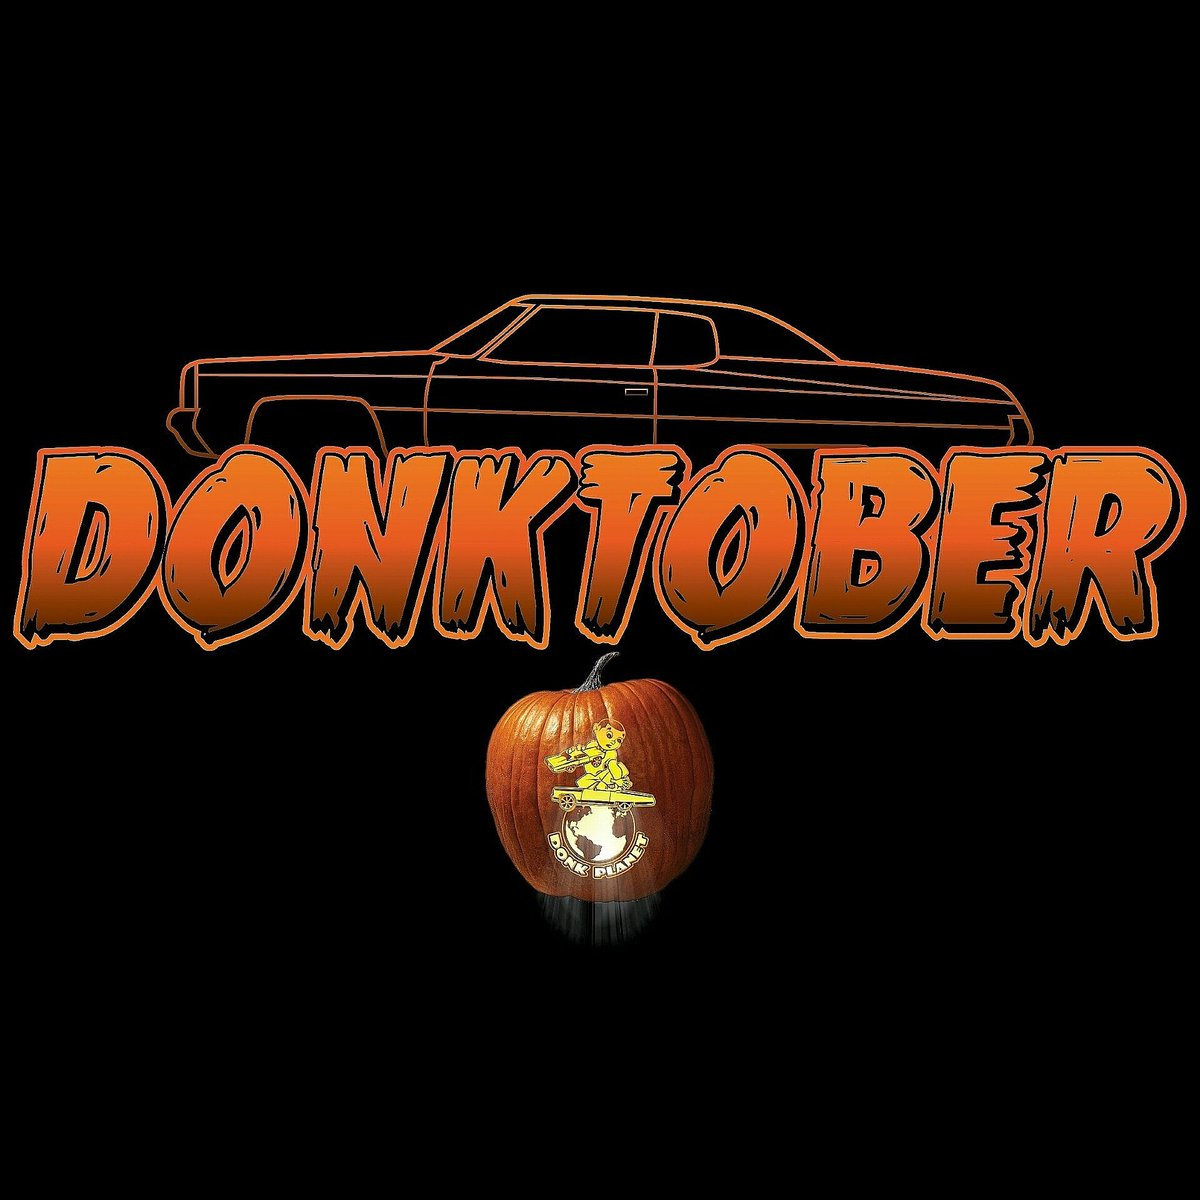 Donk Planet On Twitter Donkplanet Donktober Car Show October - Donk planet car show